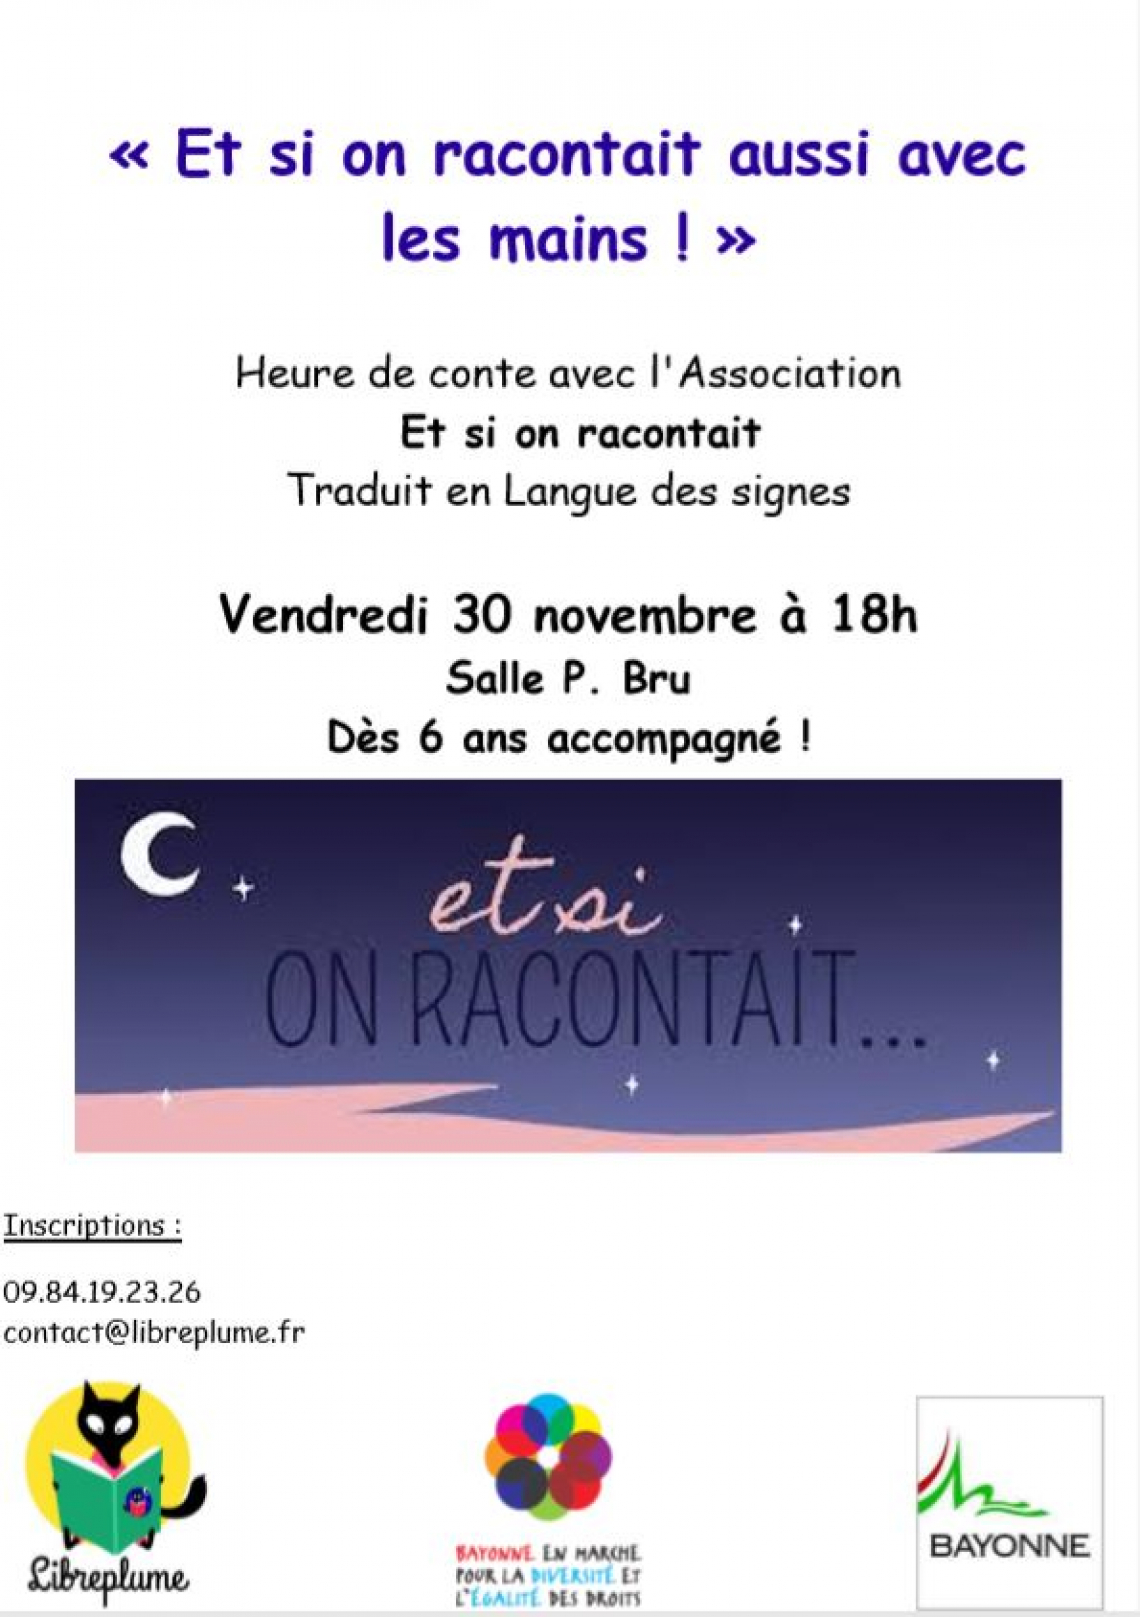 Et si on racontait...